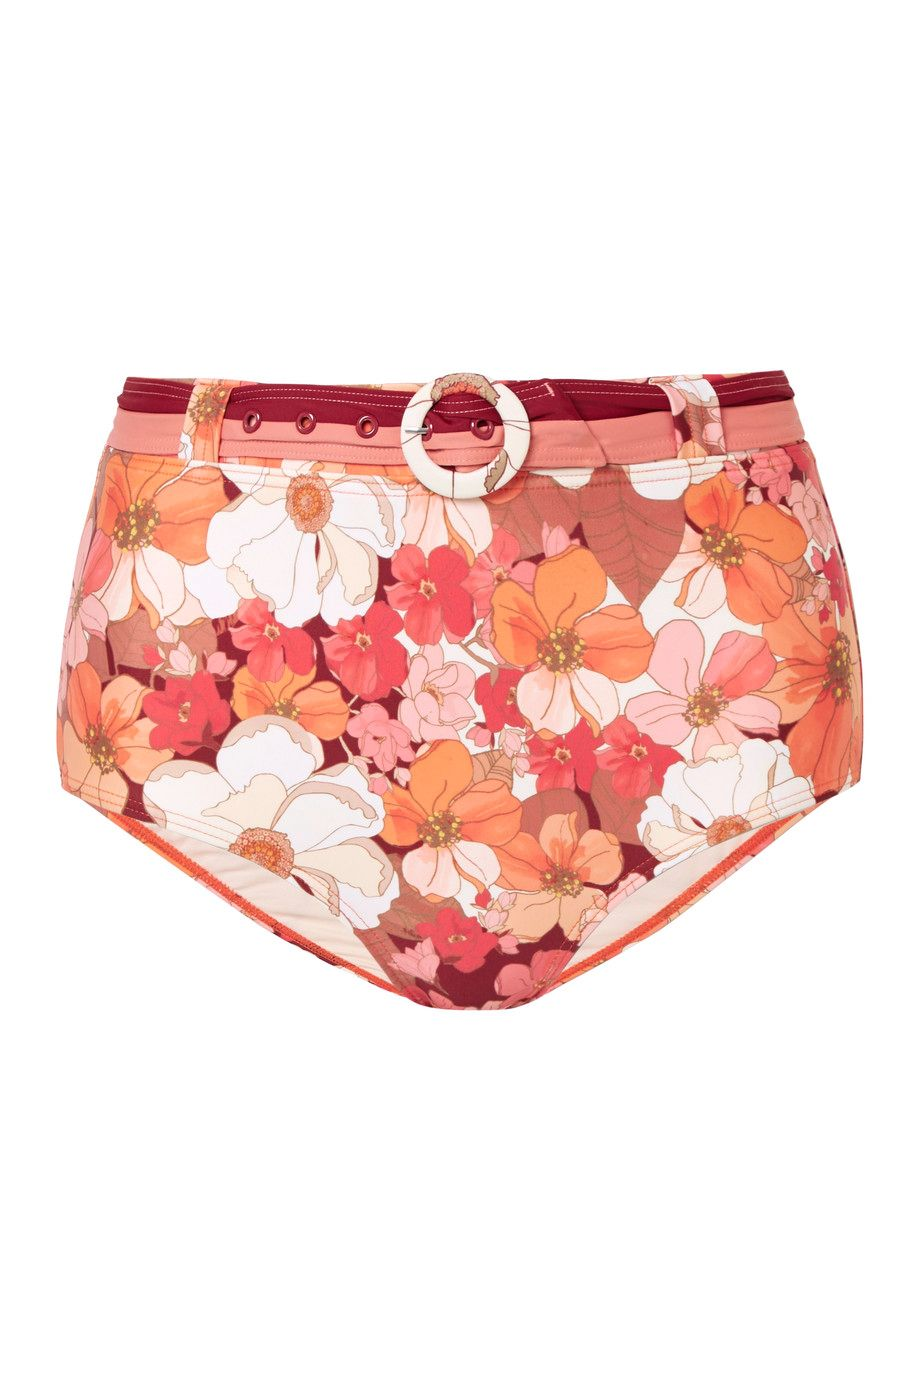 7 Bikini Styles That Will Be Everywhere This Spring 10